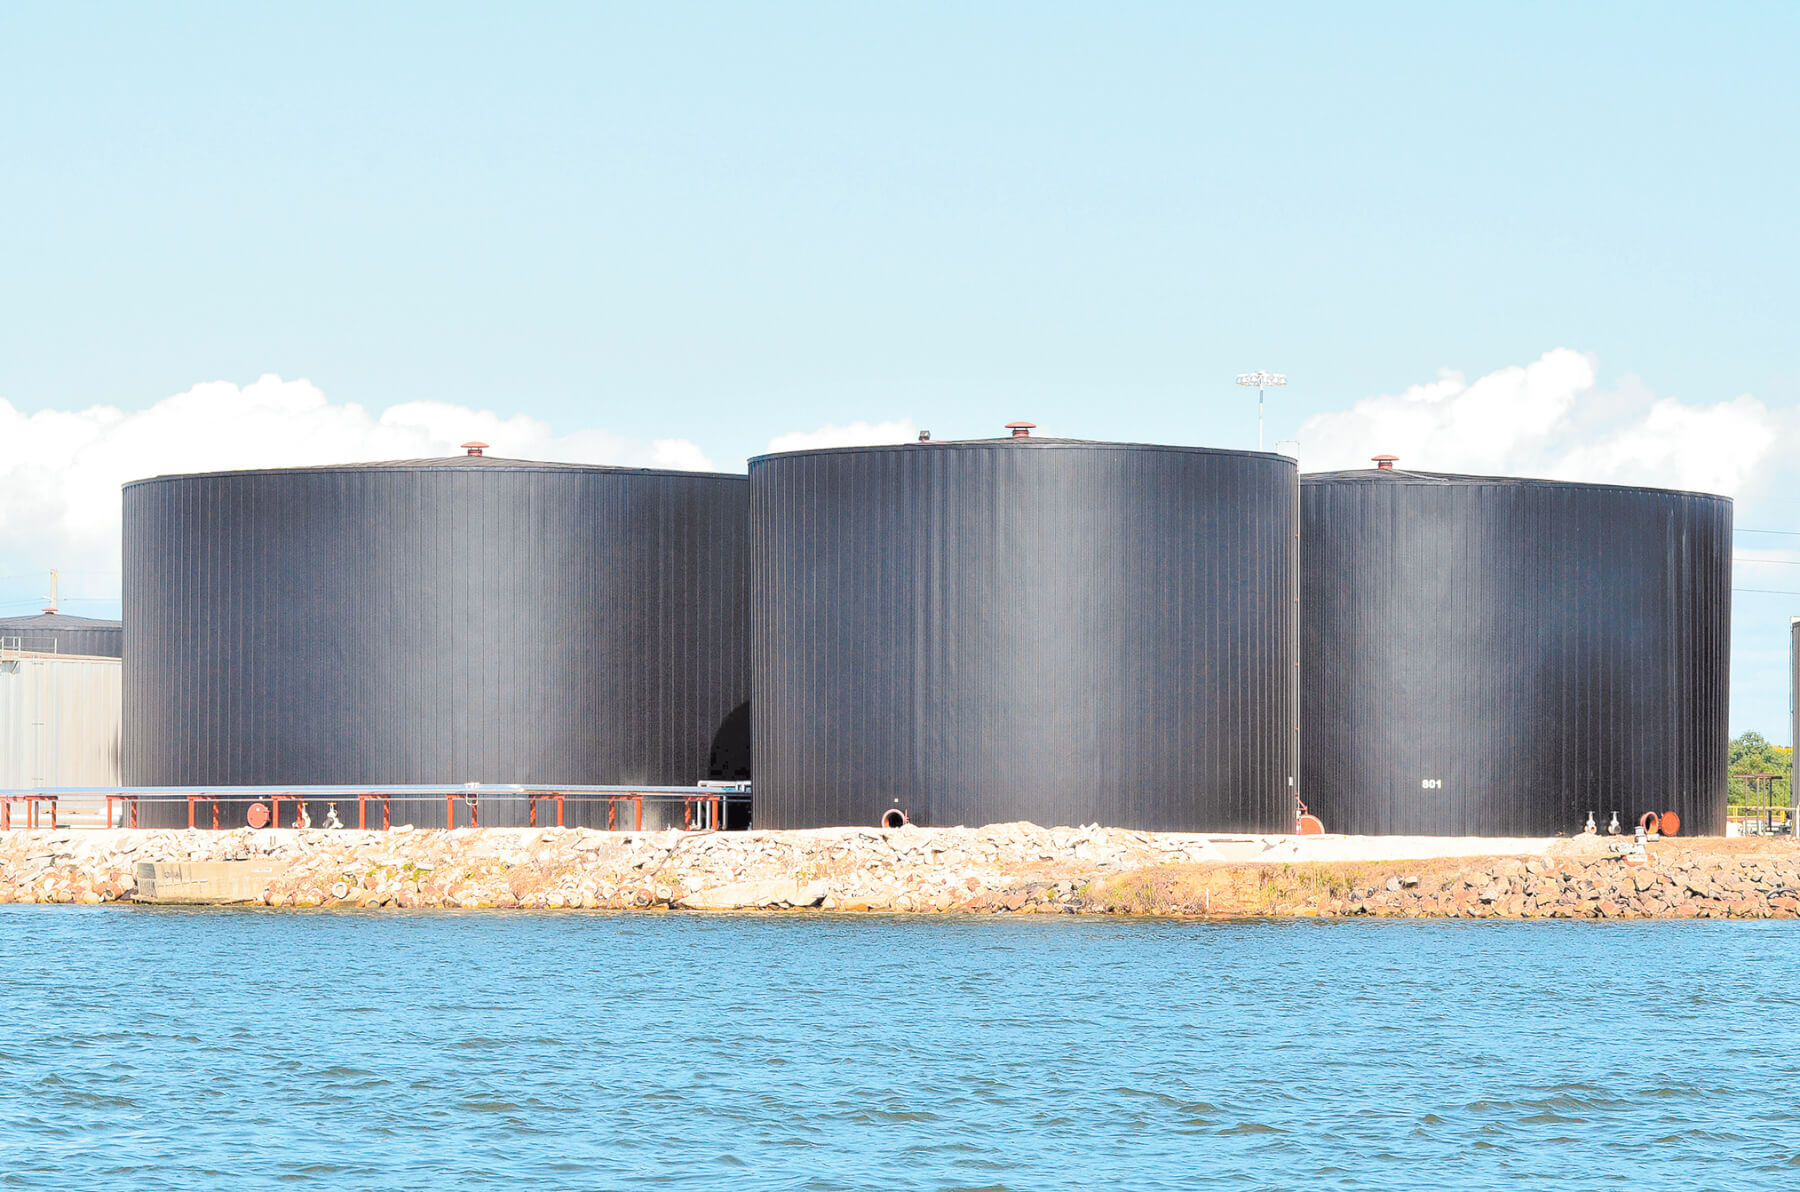 Public hearing on oil storage tanks scheduled Jan. 29